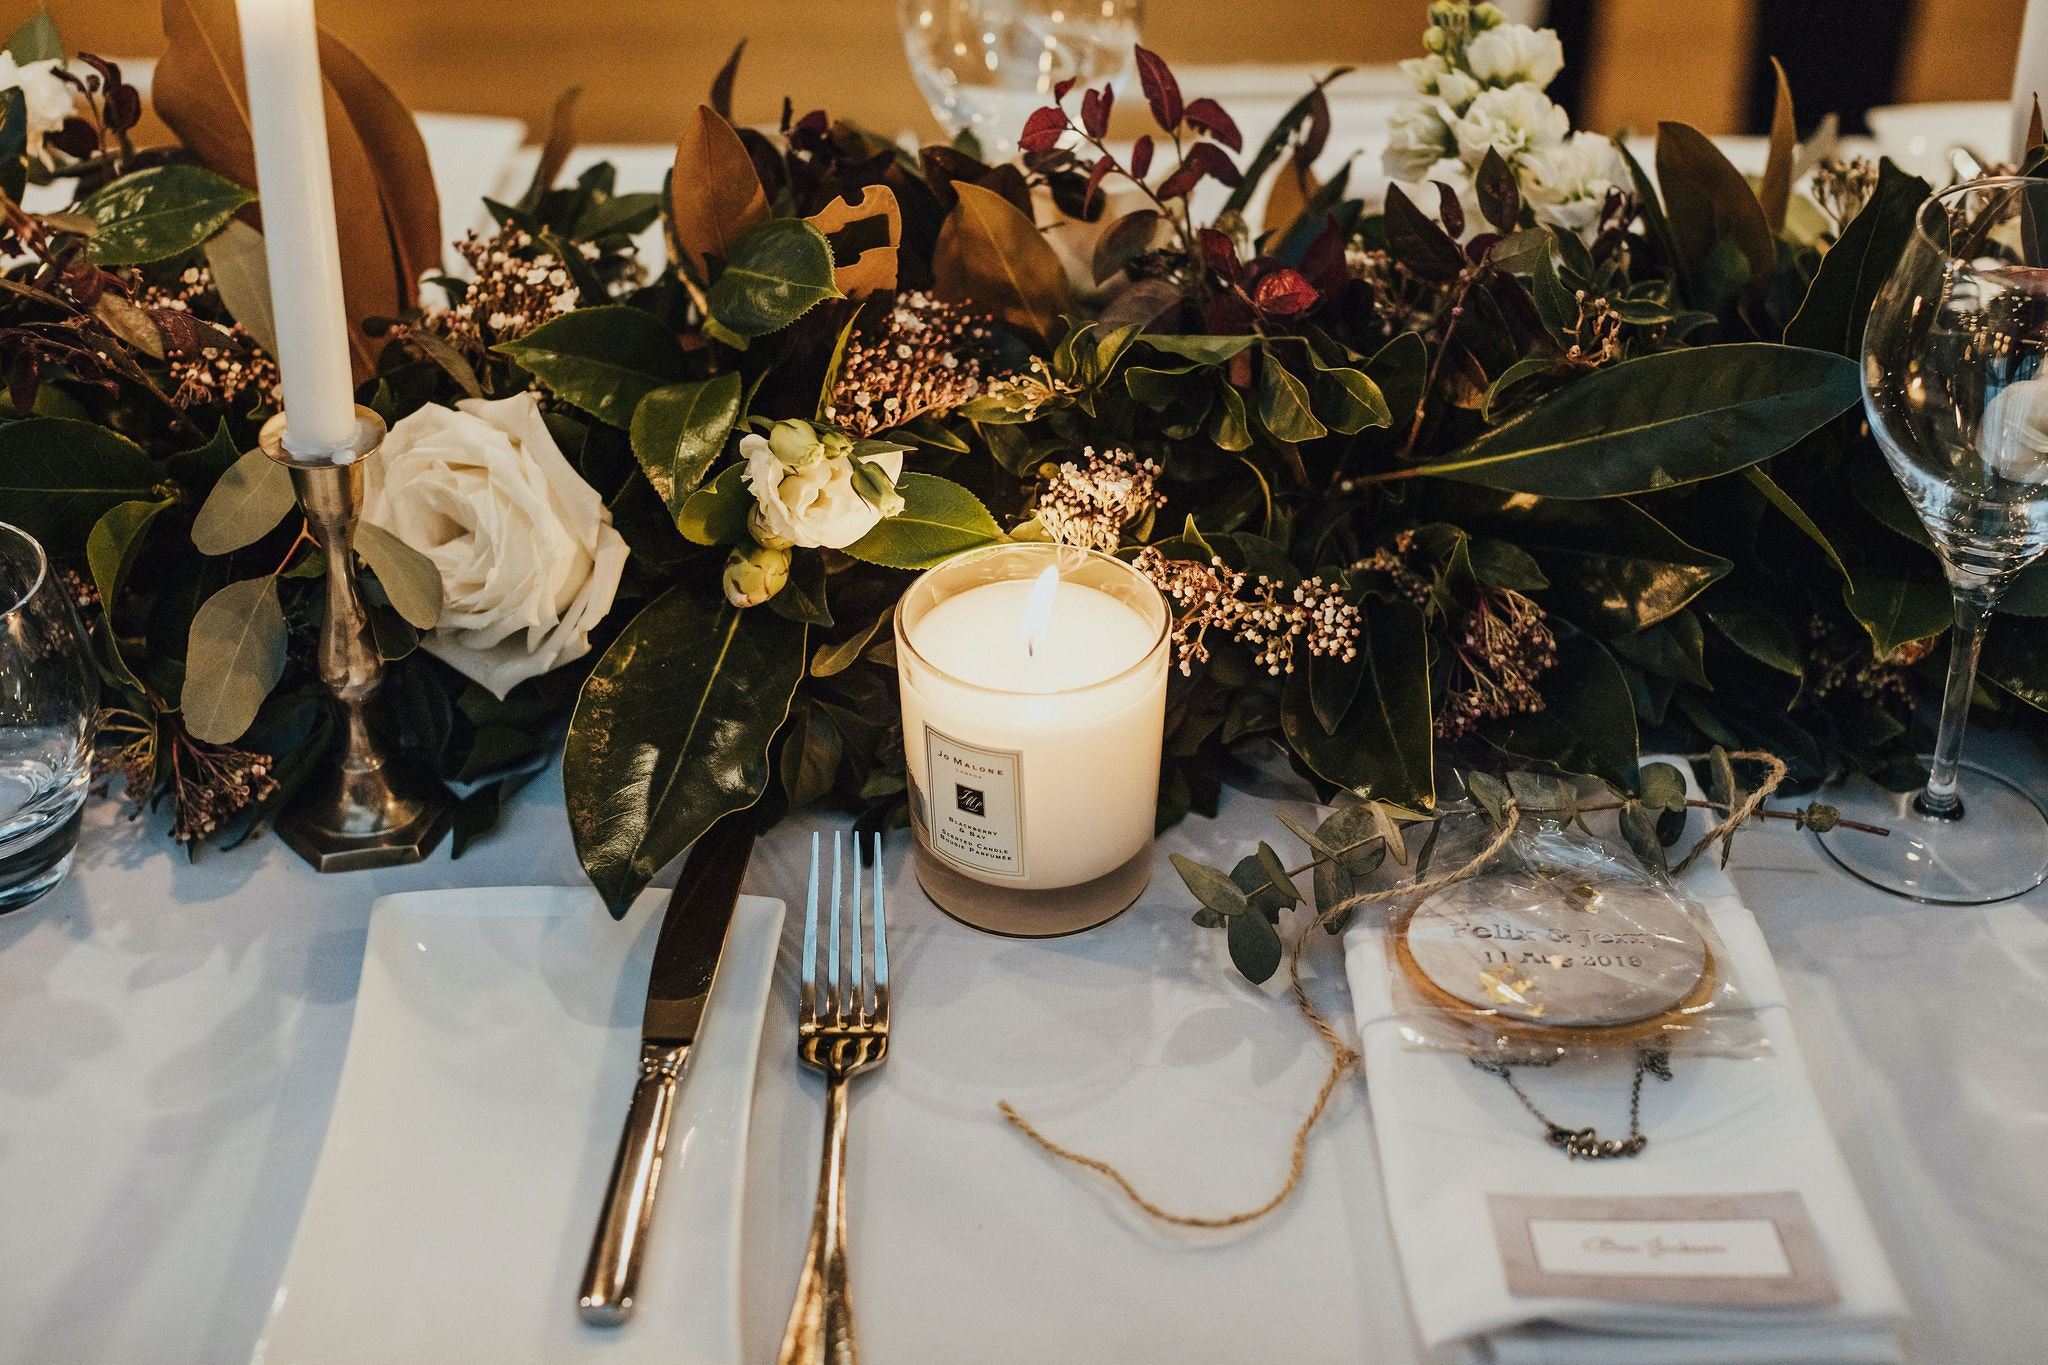 5 wedding favour ideas we know your guests will love